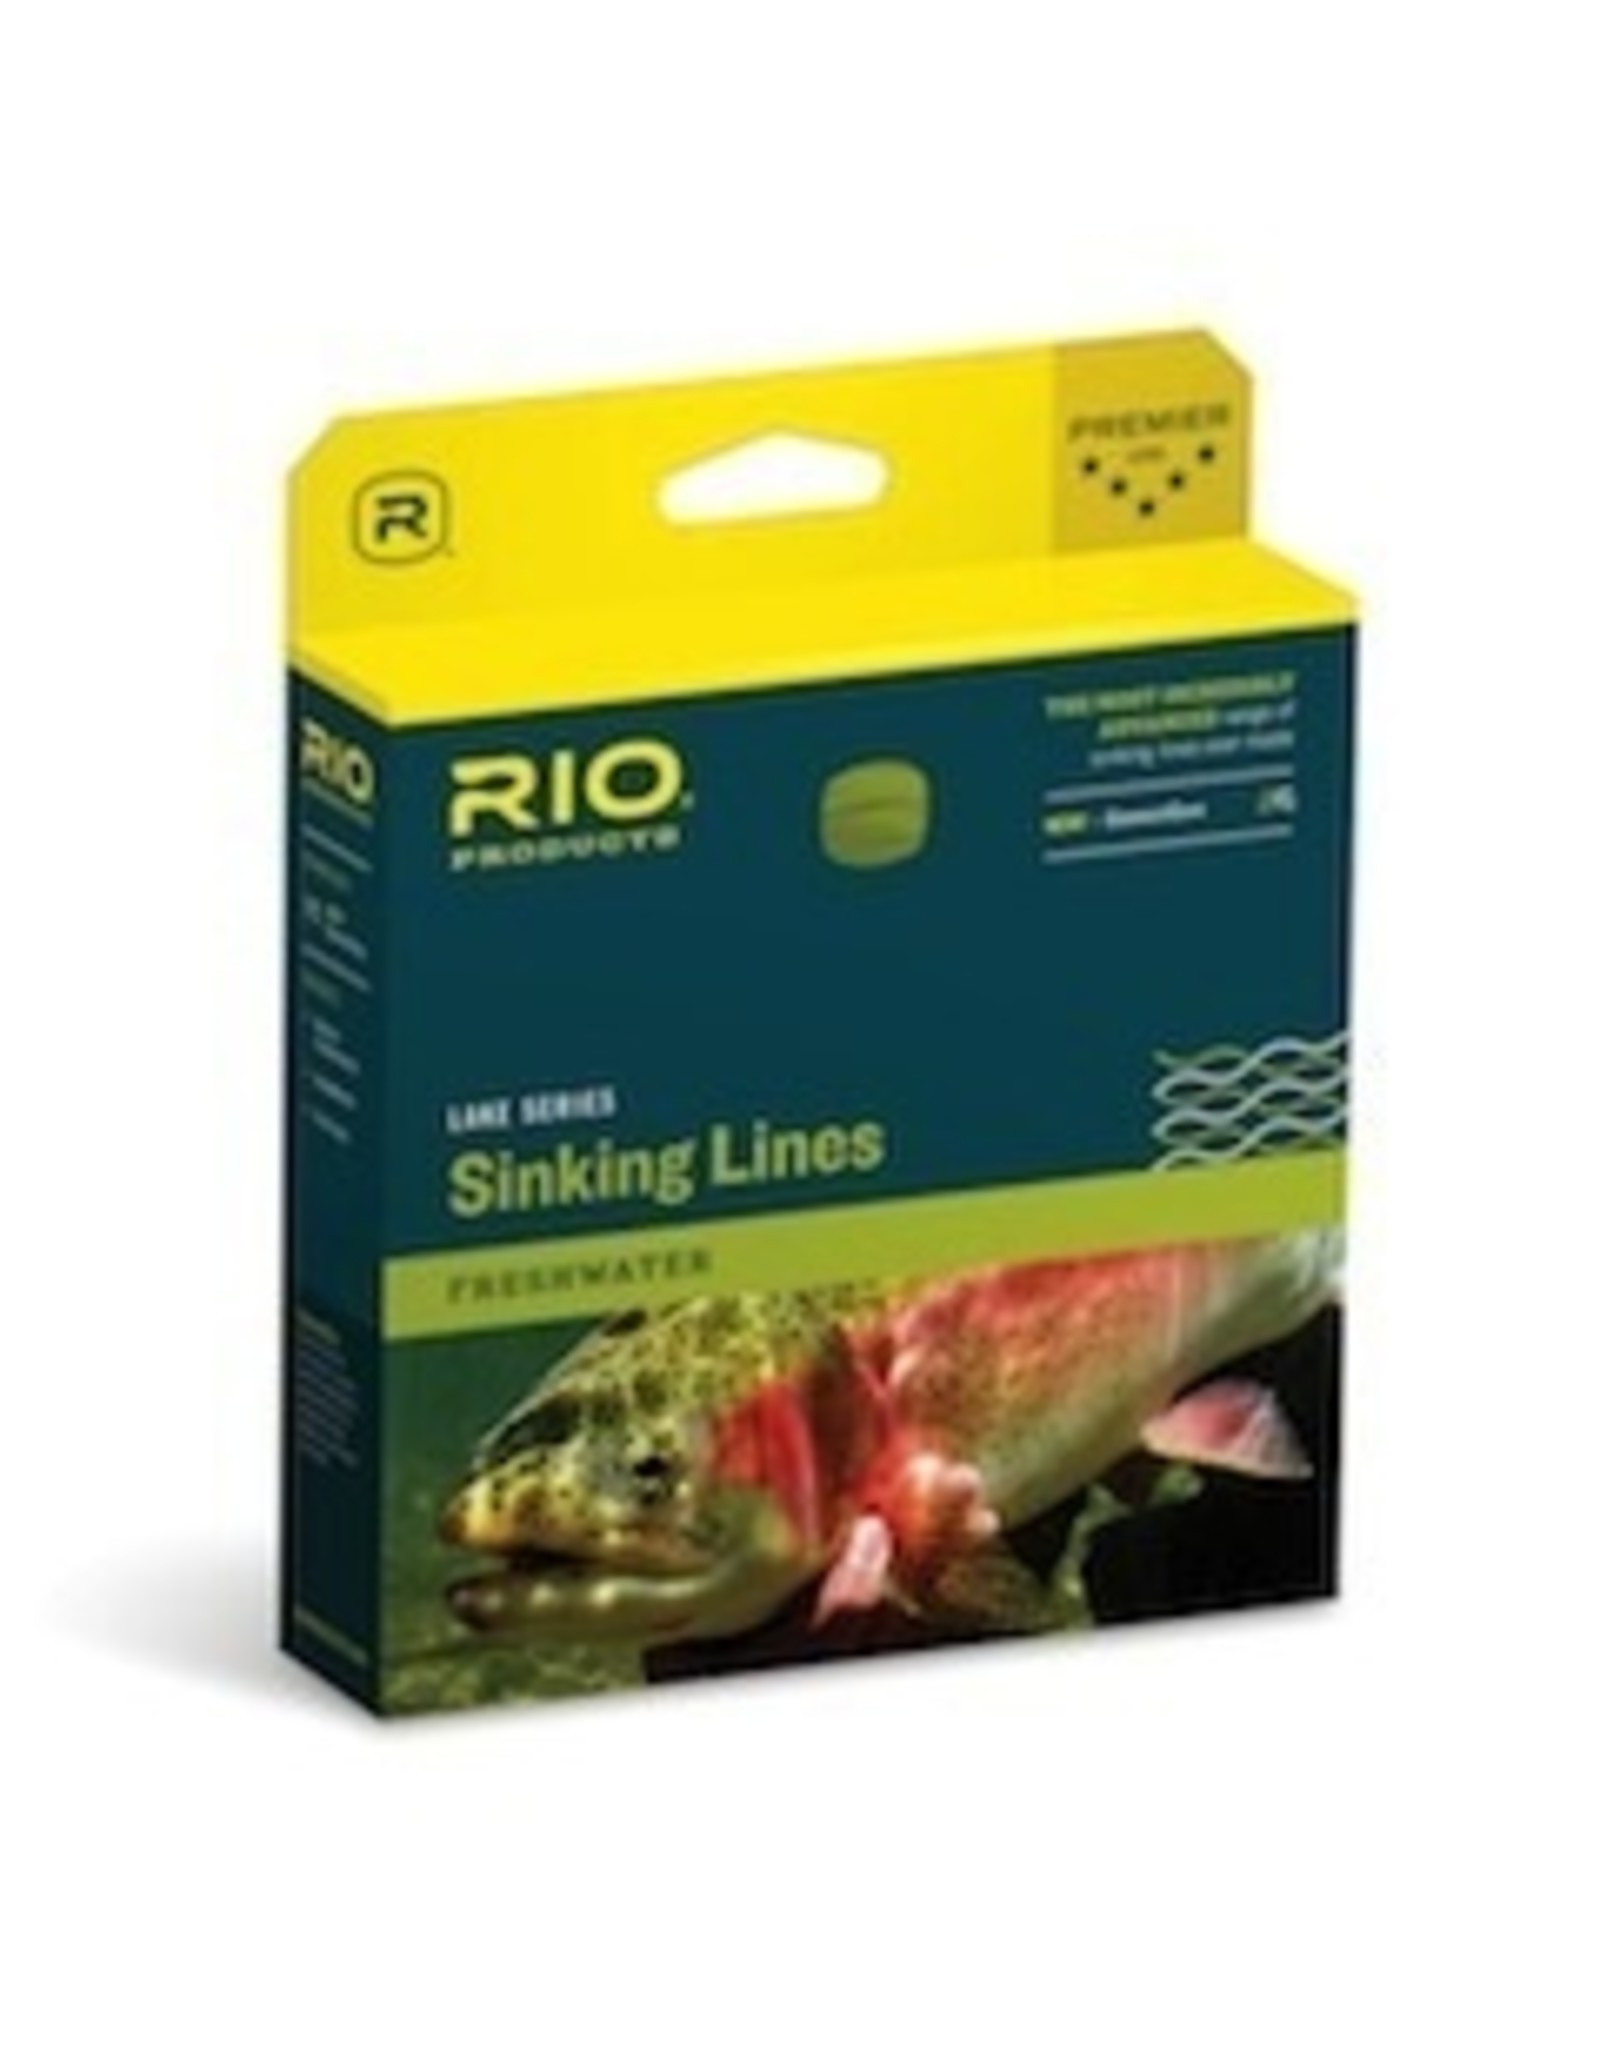 Rio RIO In Touch Deep 5 sinking line